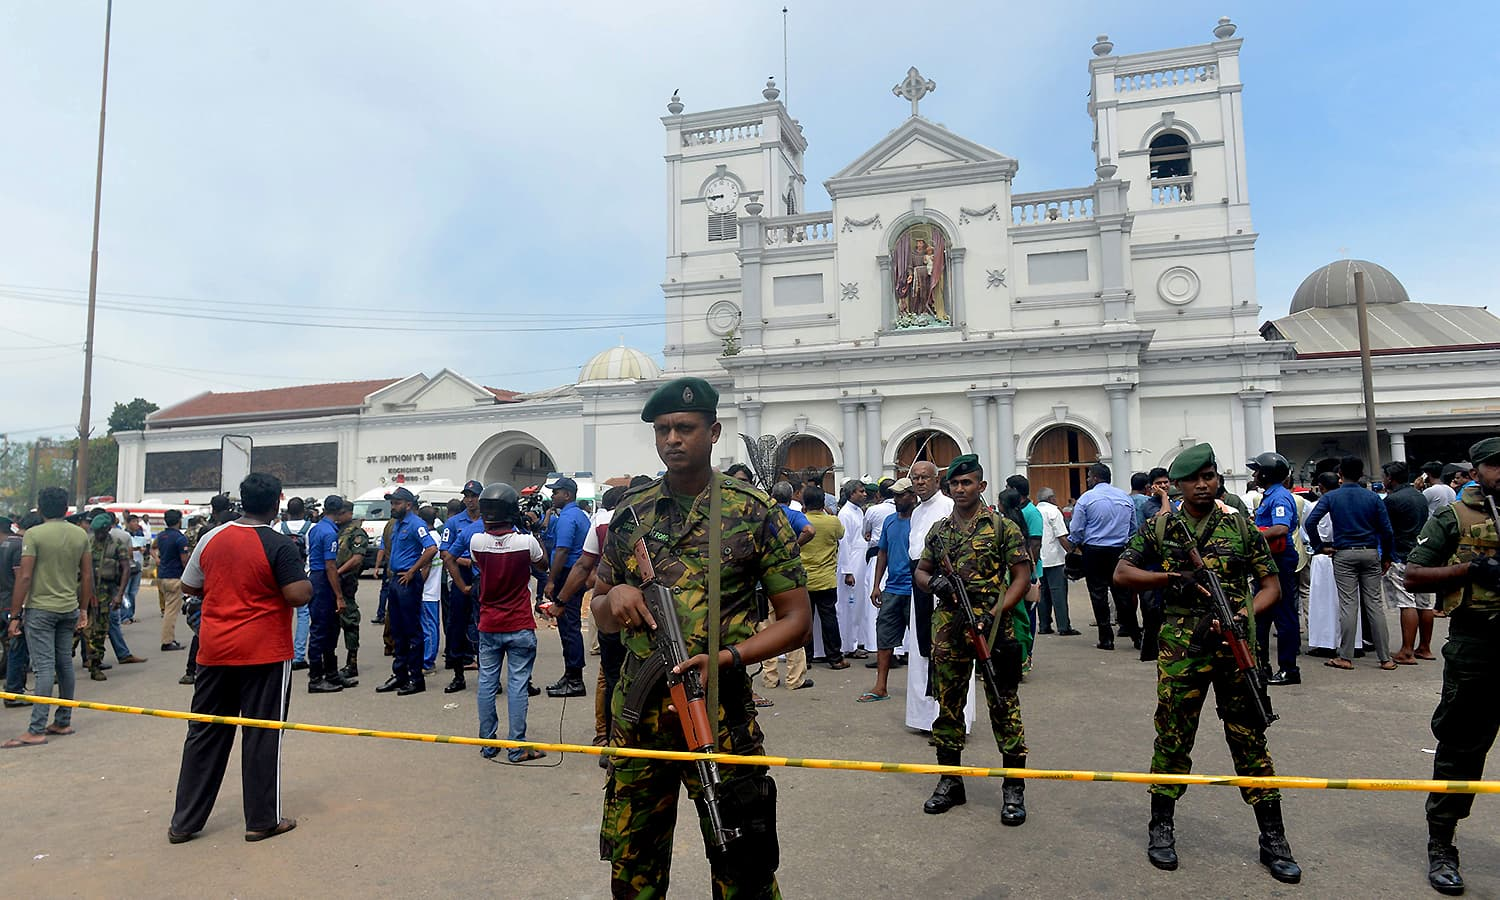 Sri Lankan security personnel keep watch outside the church premises following a blast at the St. Anthony's Shrine in Kochchikade, Colombo on April 21, 2019. ─ AFP